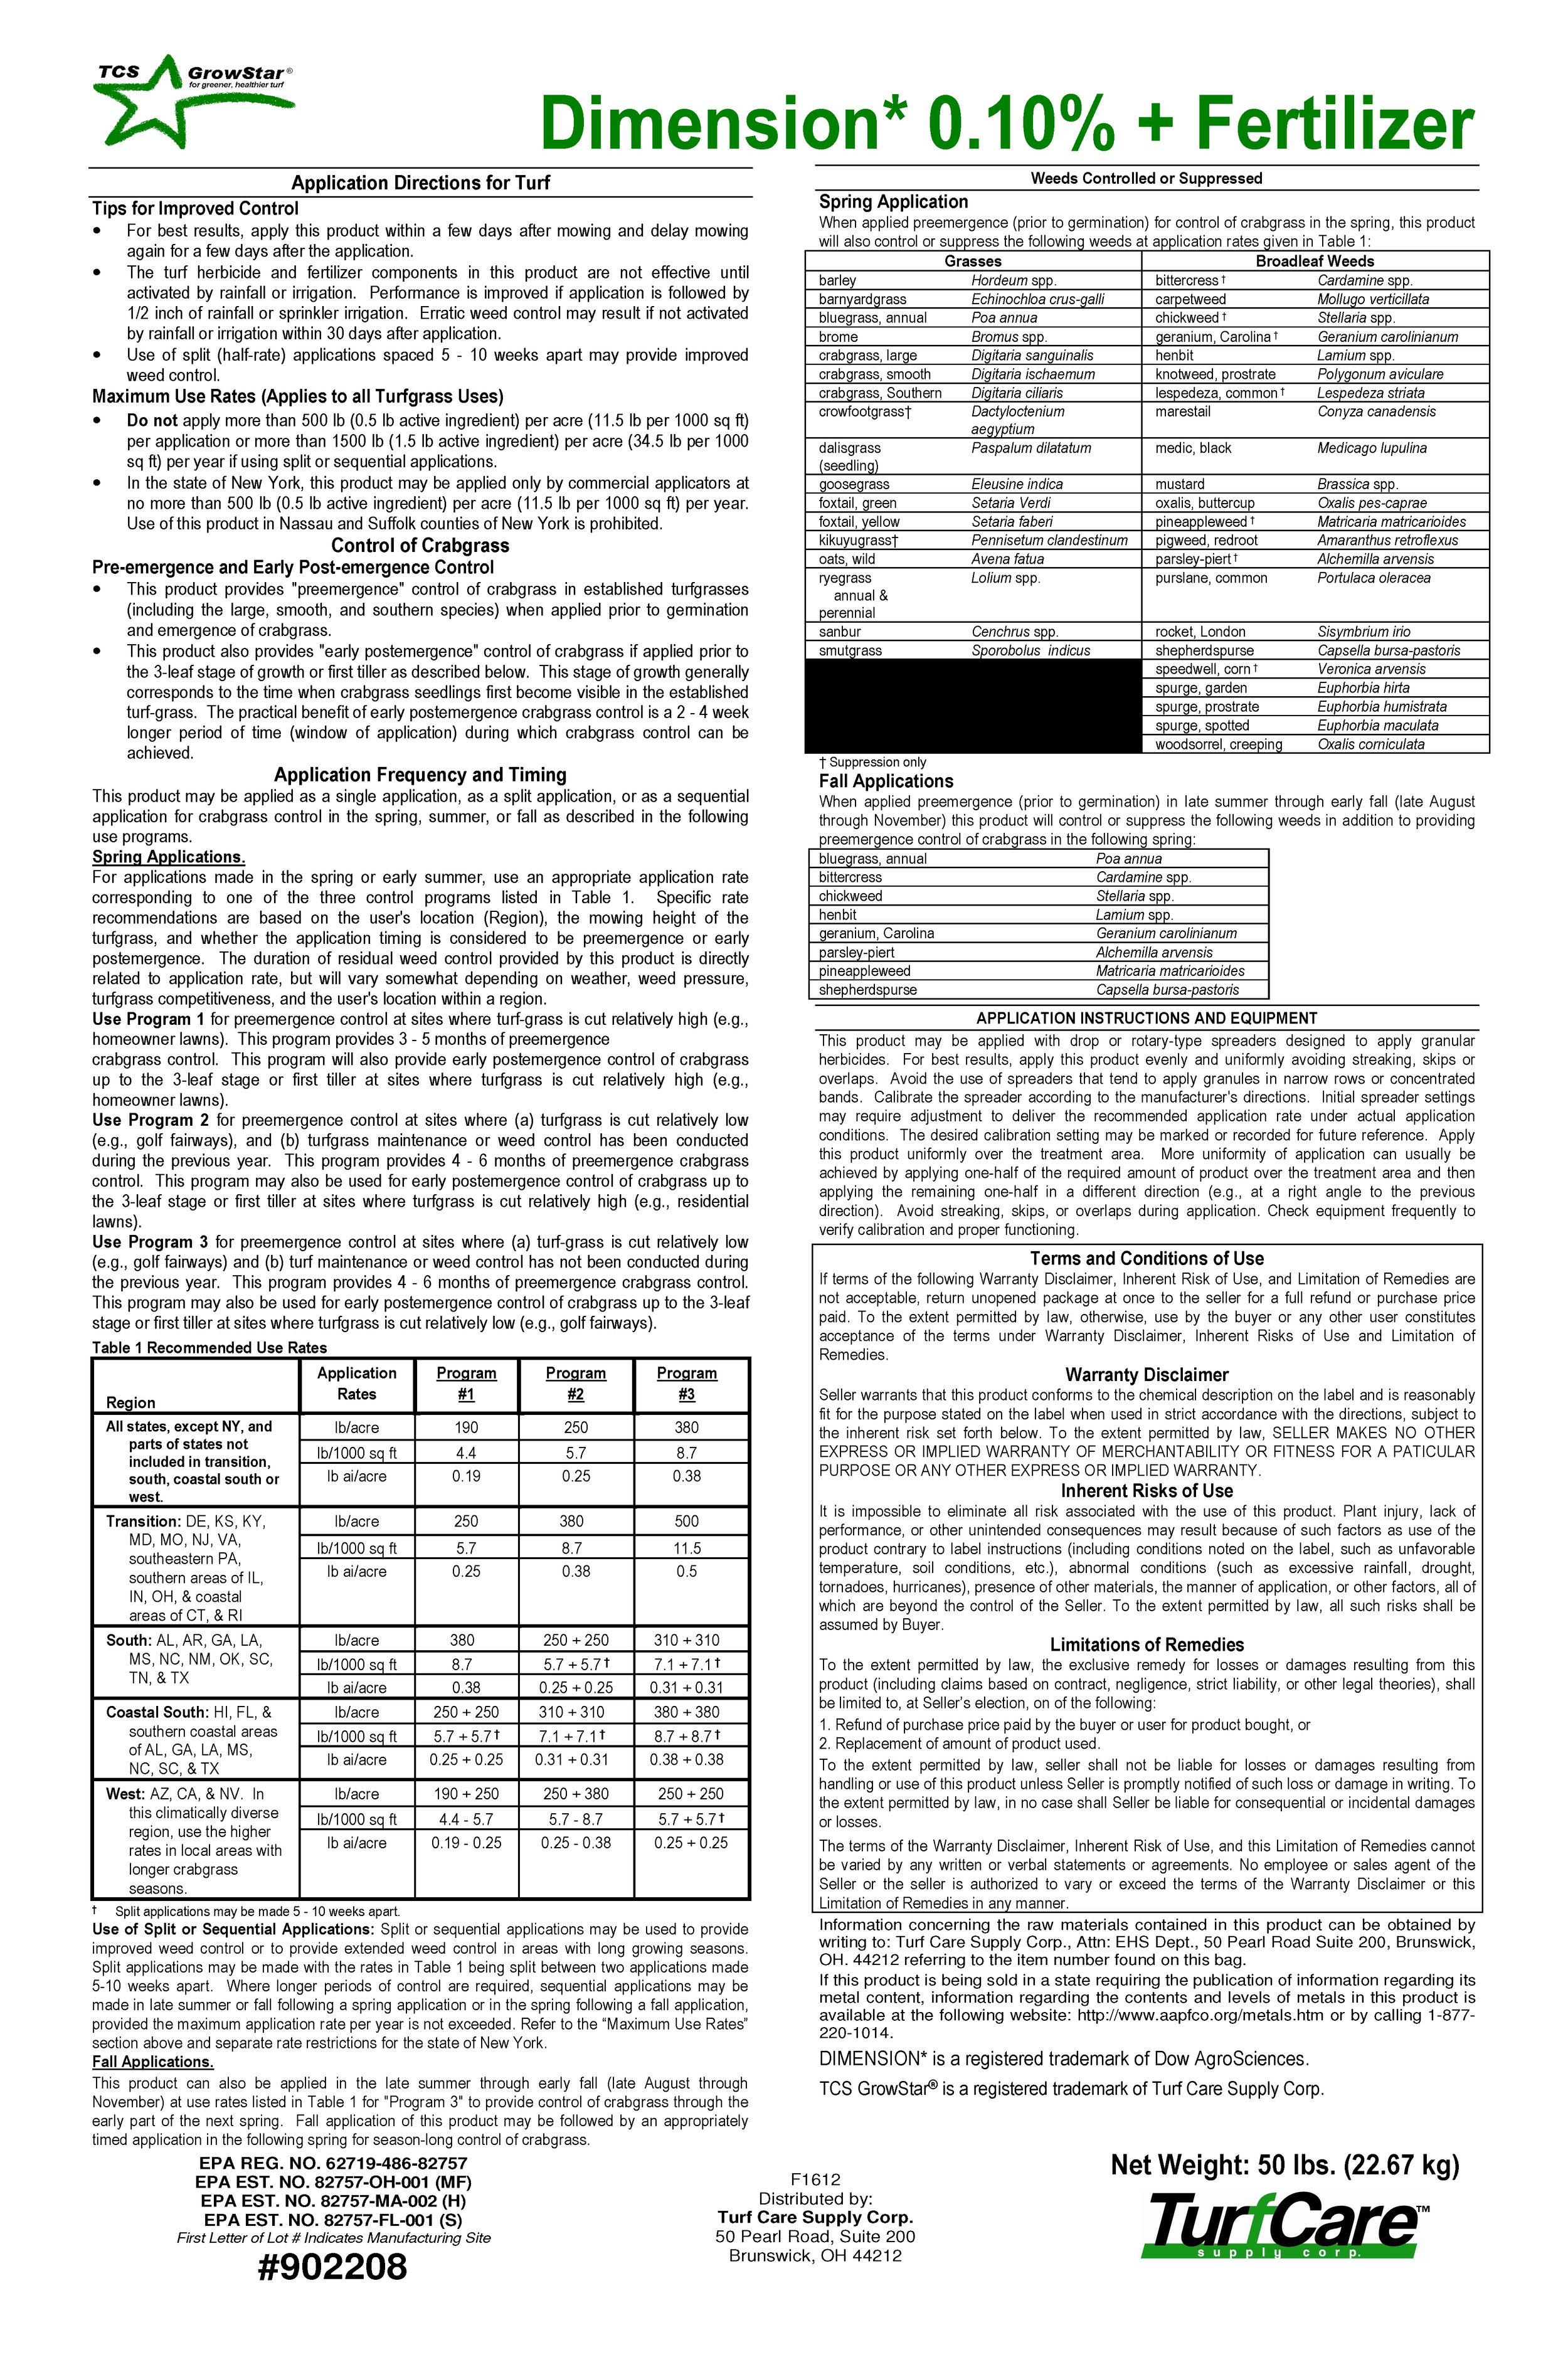 902208 Label 18-0-3_Page_2.png